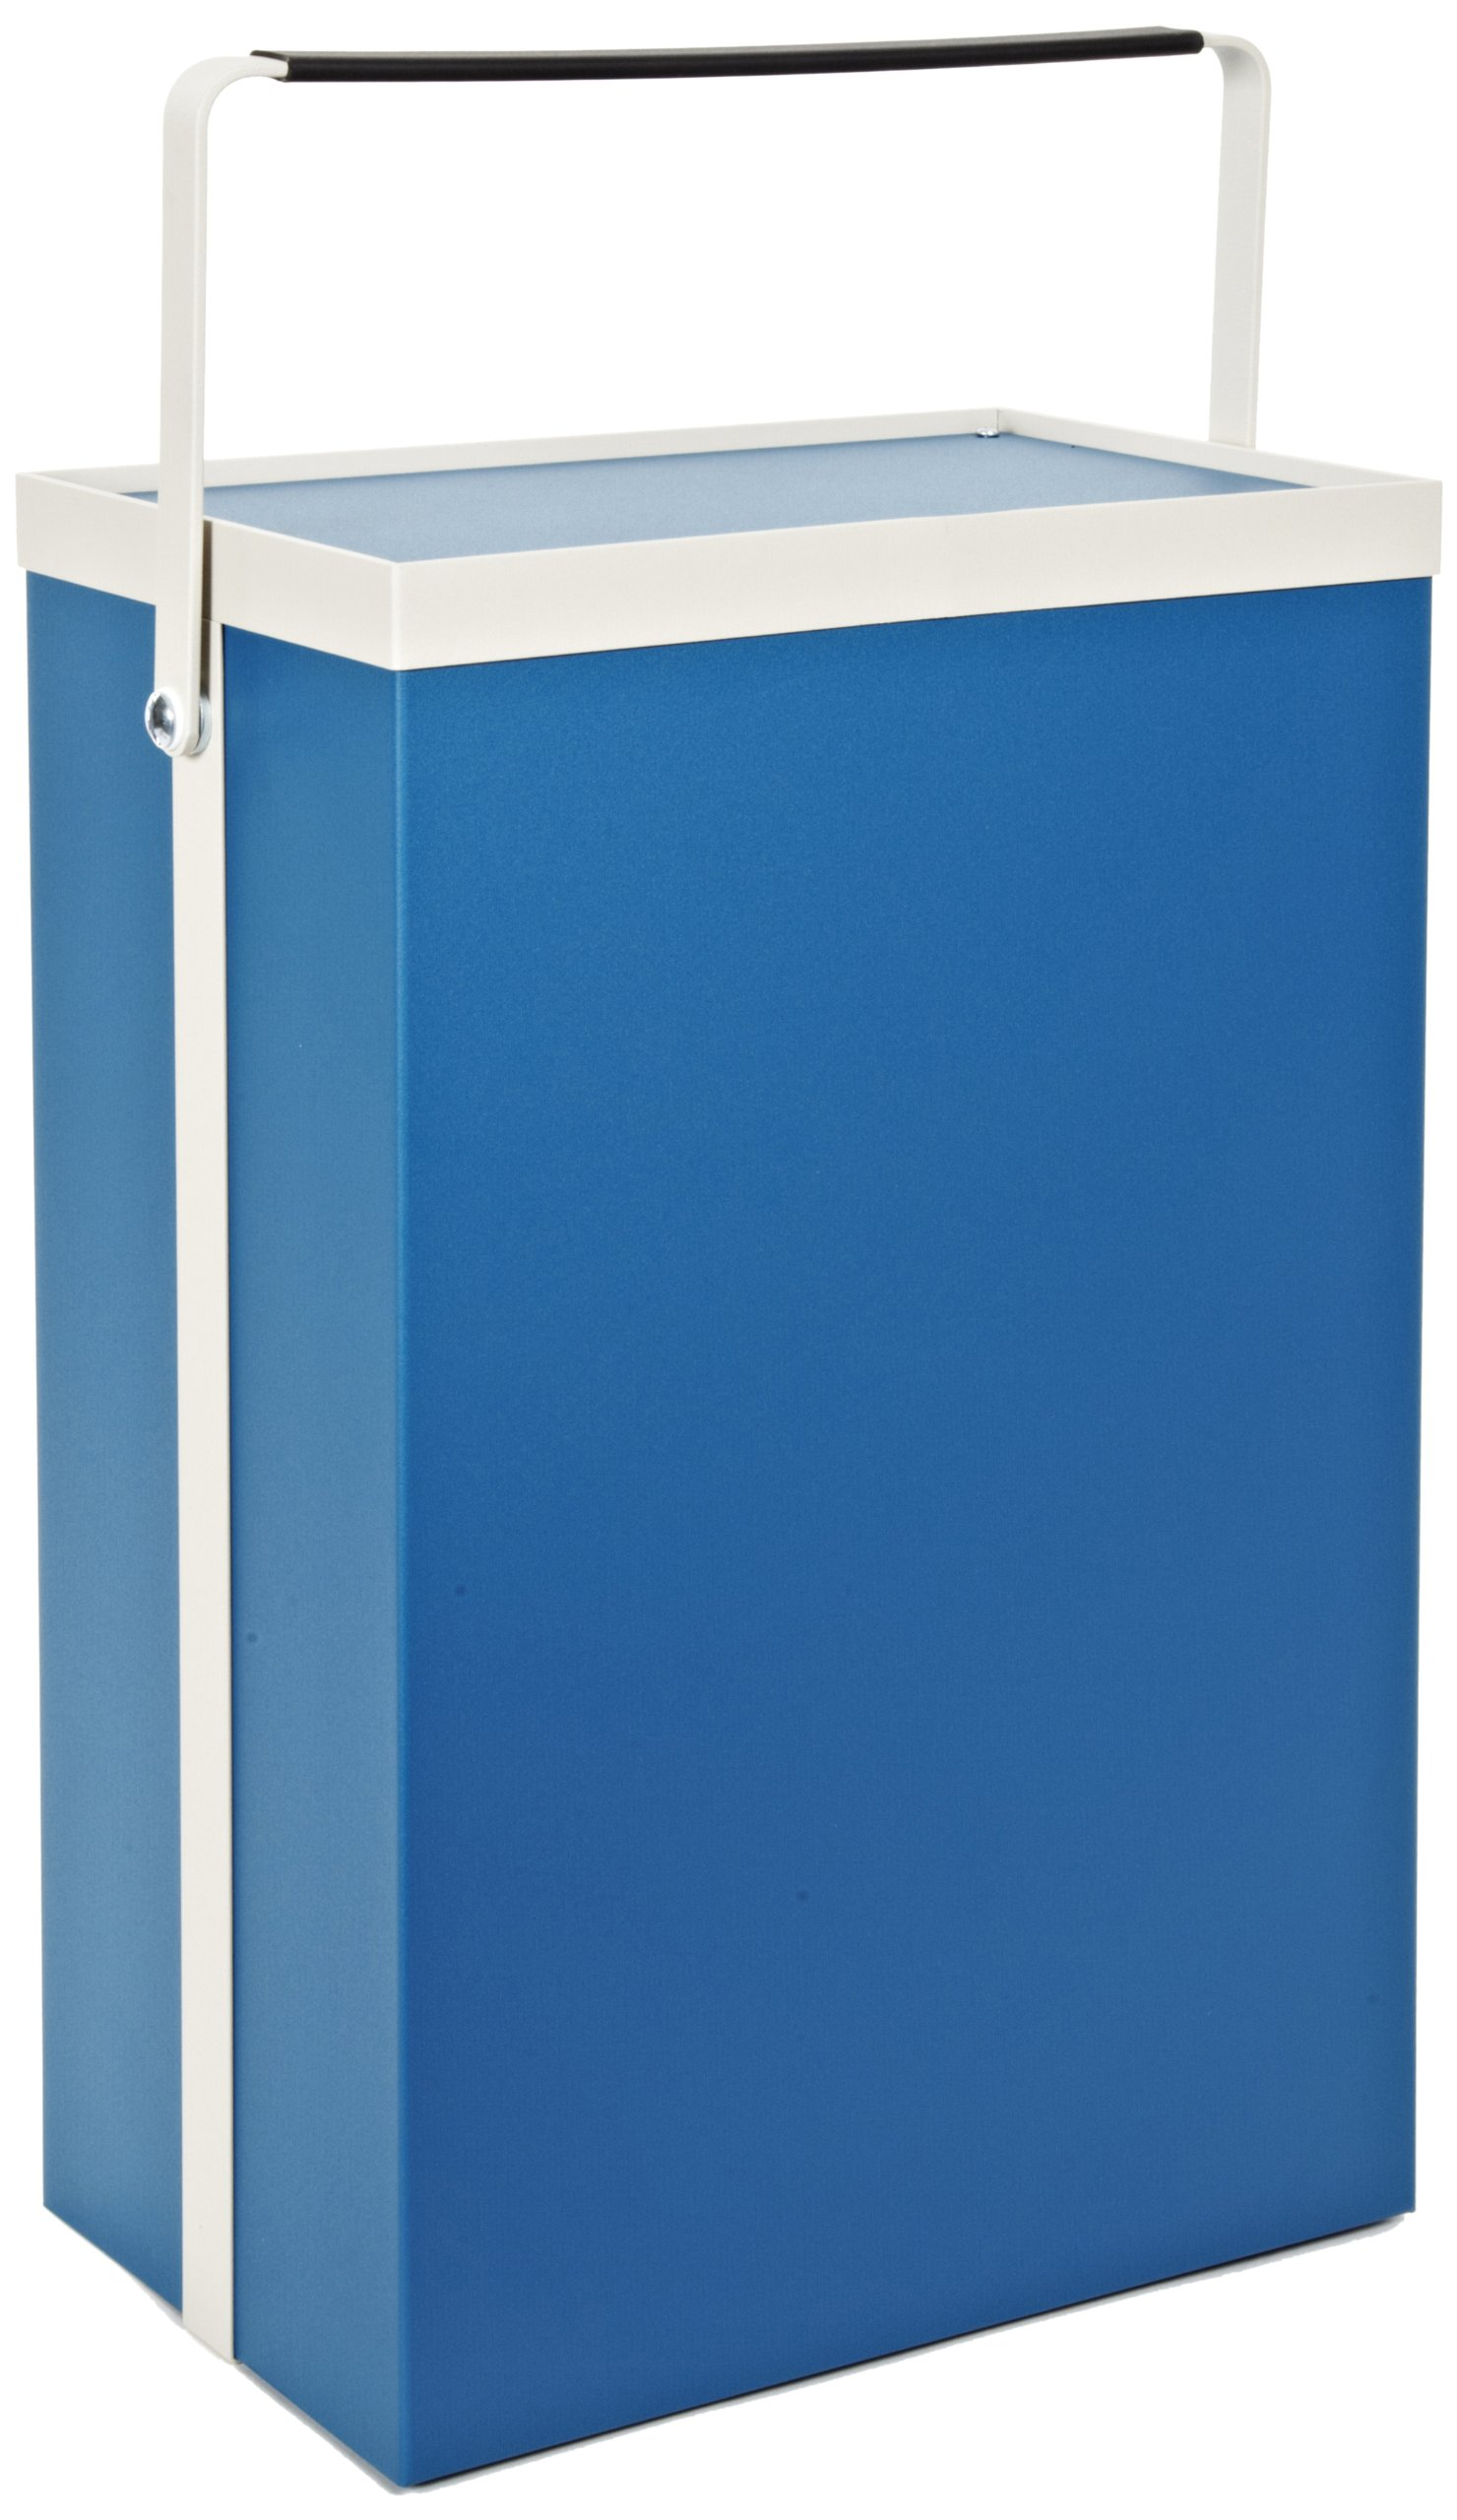 BUD Industries Series TR Aluminum Small Cabinet with White Frame and Bail, 12'' Width x 8'' Height x 18-3/4'' Depth, Royal Blue Texture Finish by BUD Industries